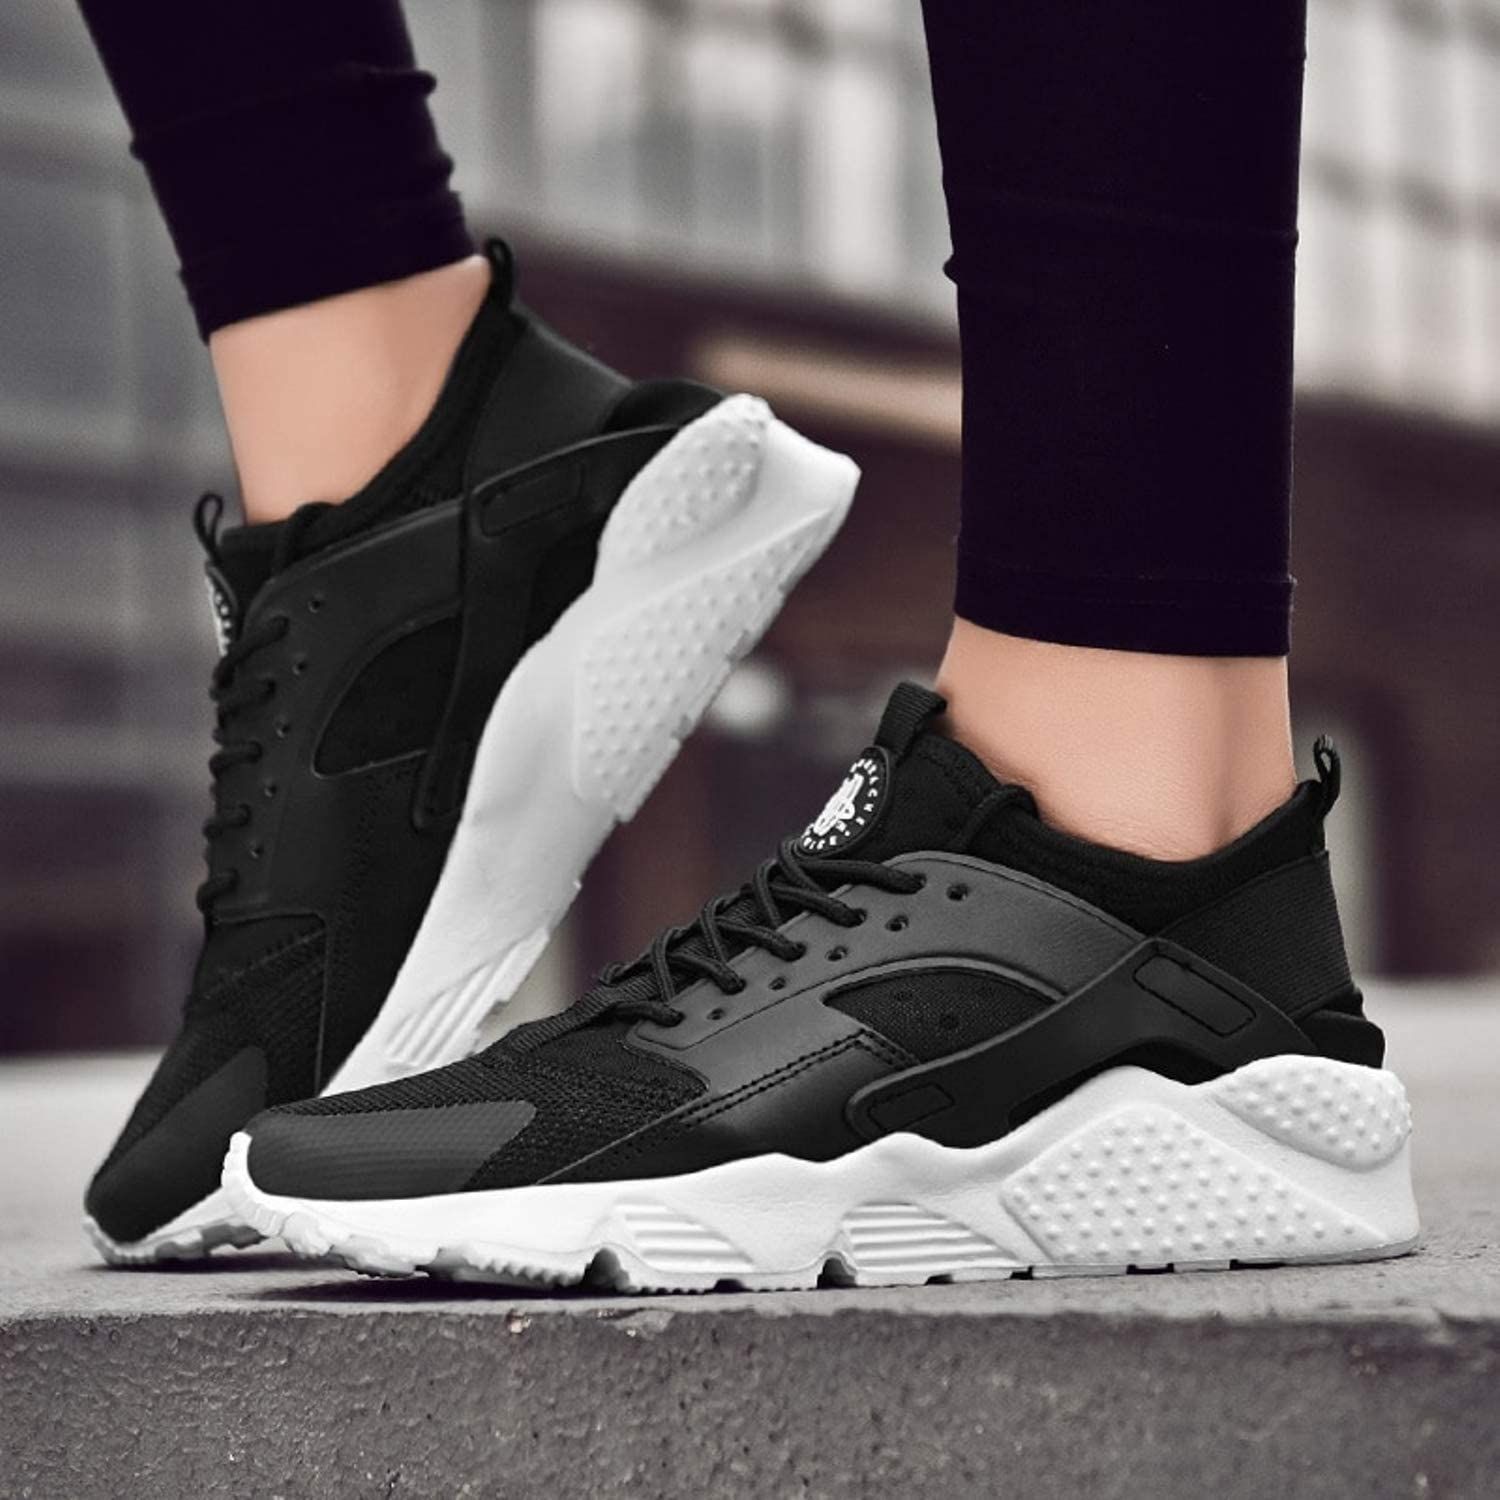 shoes Women Casual Sneakers Comfortable Flats Sneakers Women shoes Male Breathable Unisex Footwear Ladies shoes